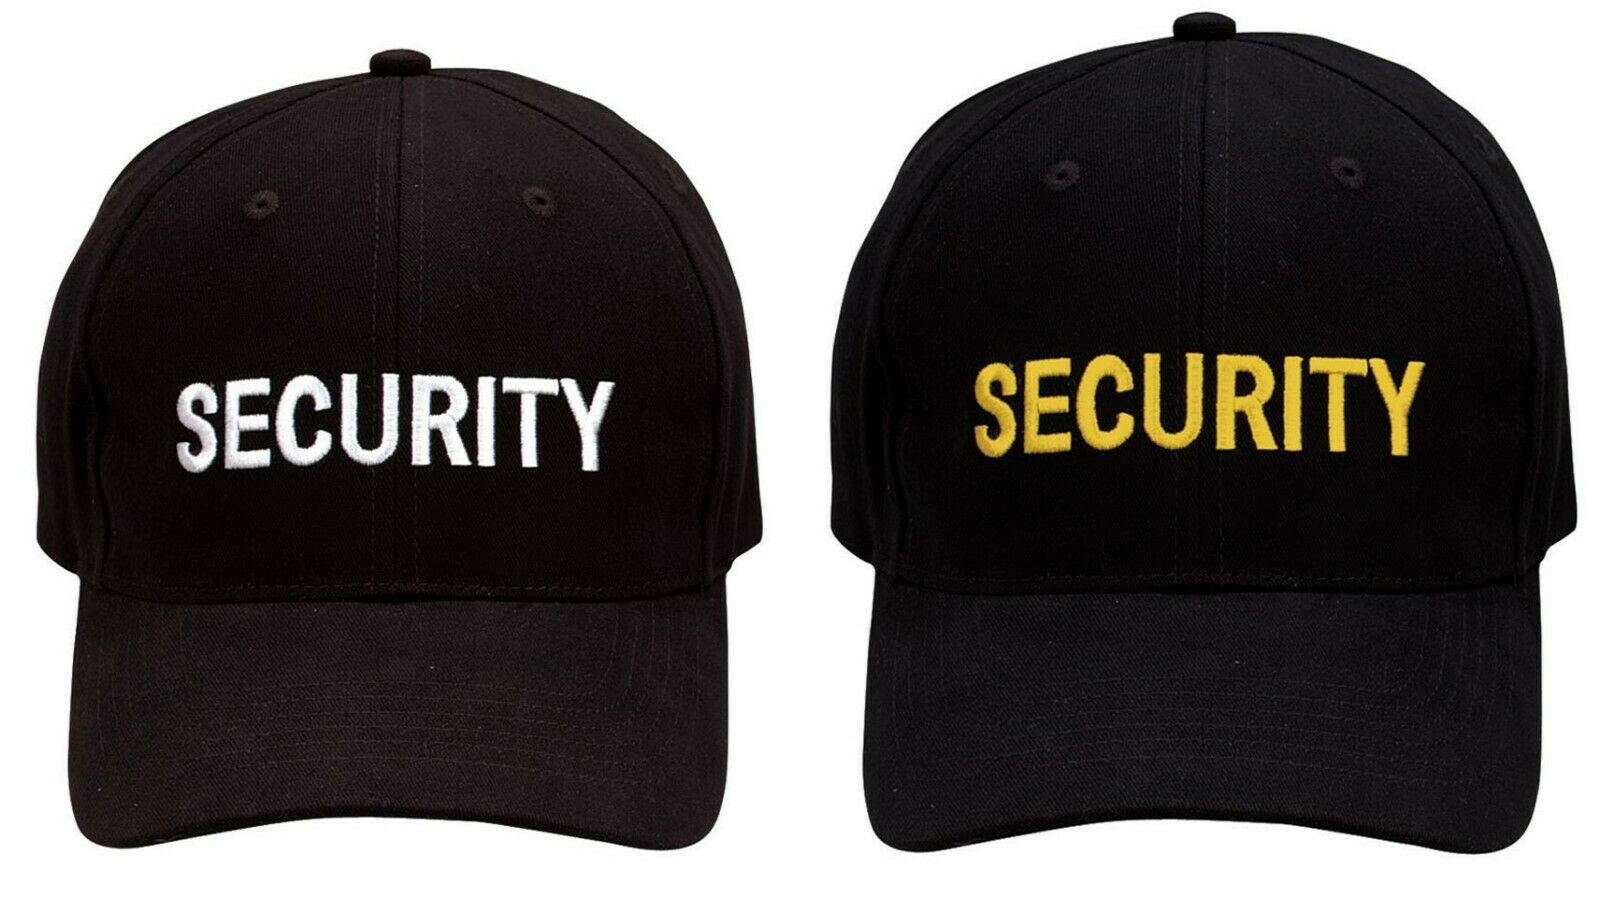 Black Security   Baseball   Uniform   Cap   Ballcap Hat